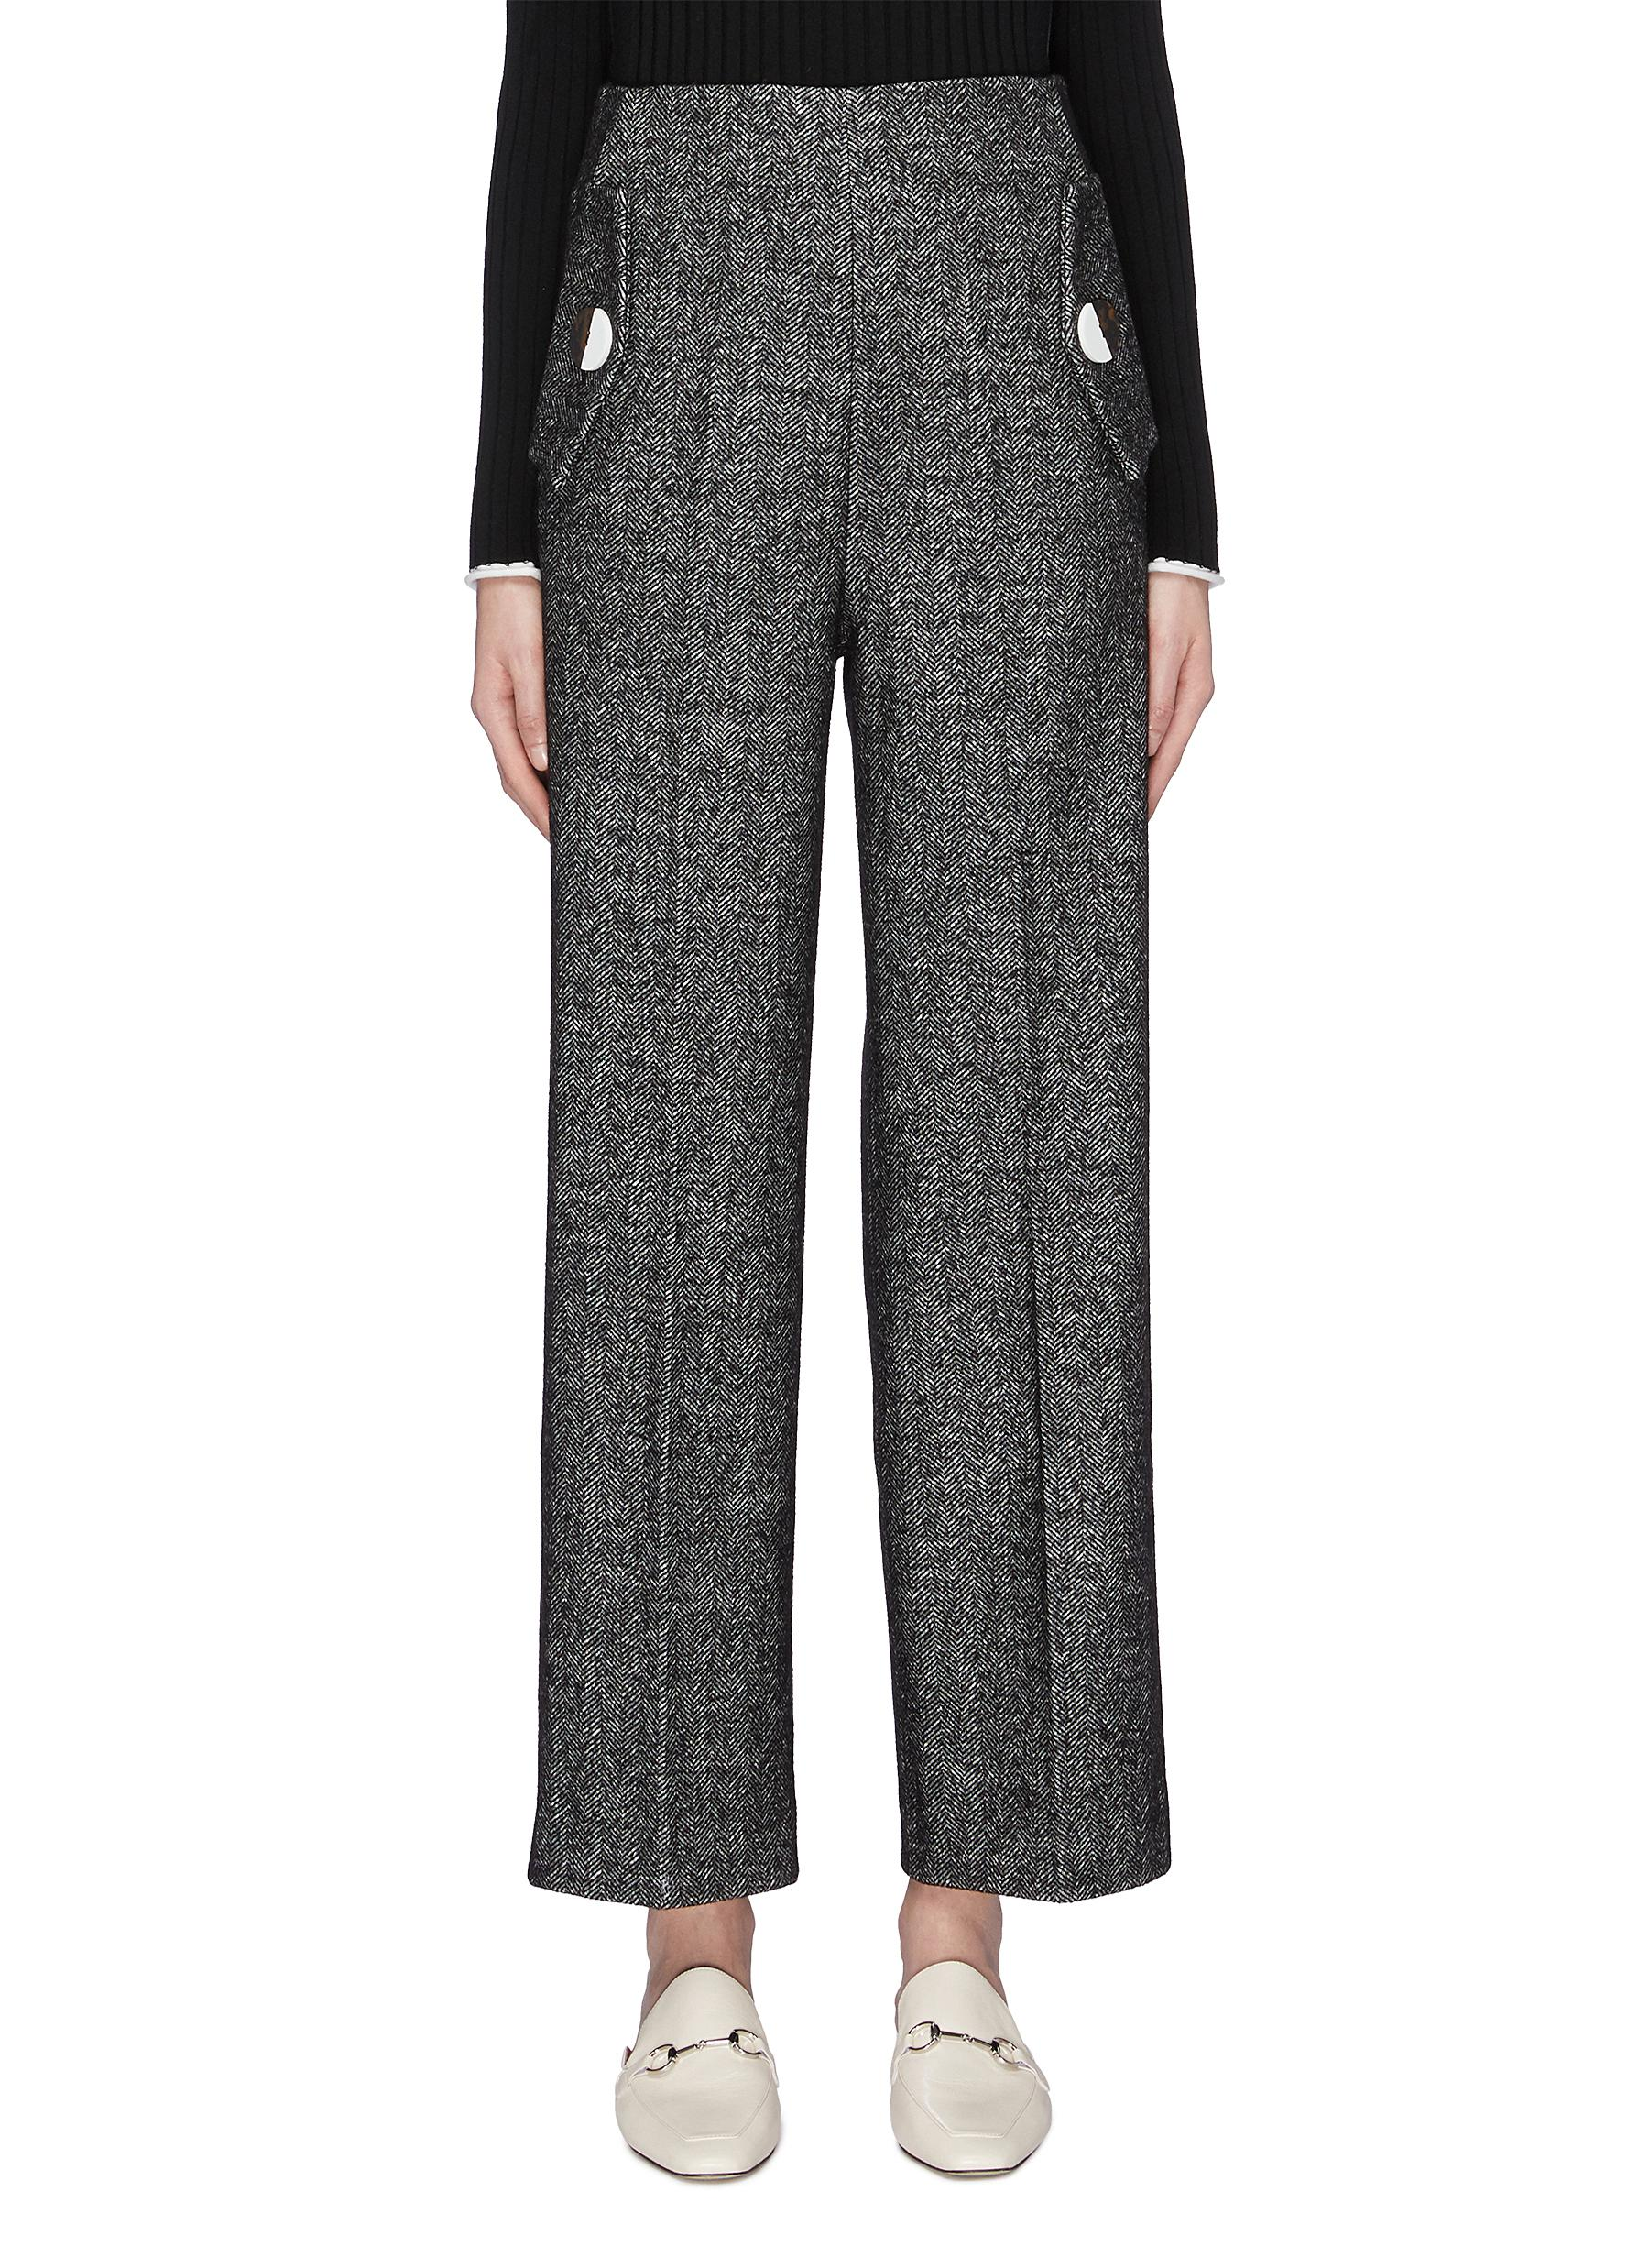 Button flap pocket herringbone pants by Comme Moi